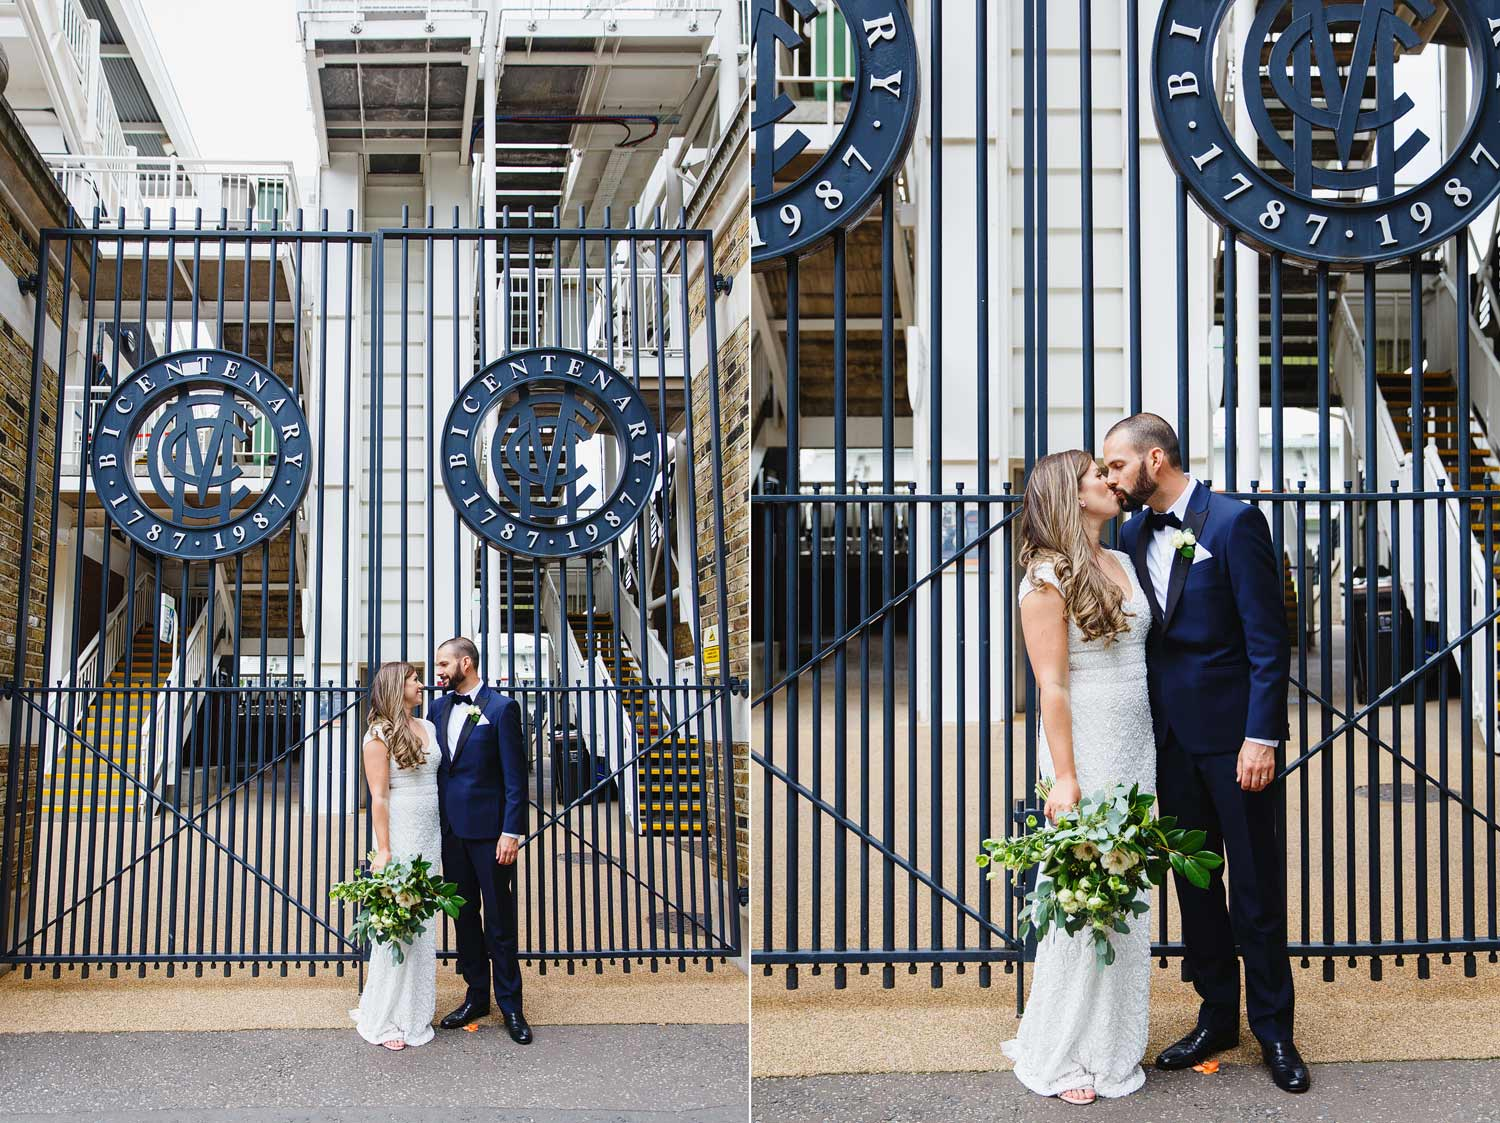 A wedding couple pose outside the Lord's Cricket Ground after their wedding at Asia House in London.